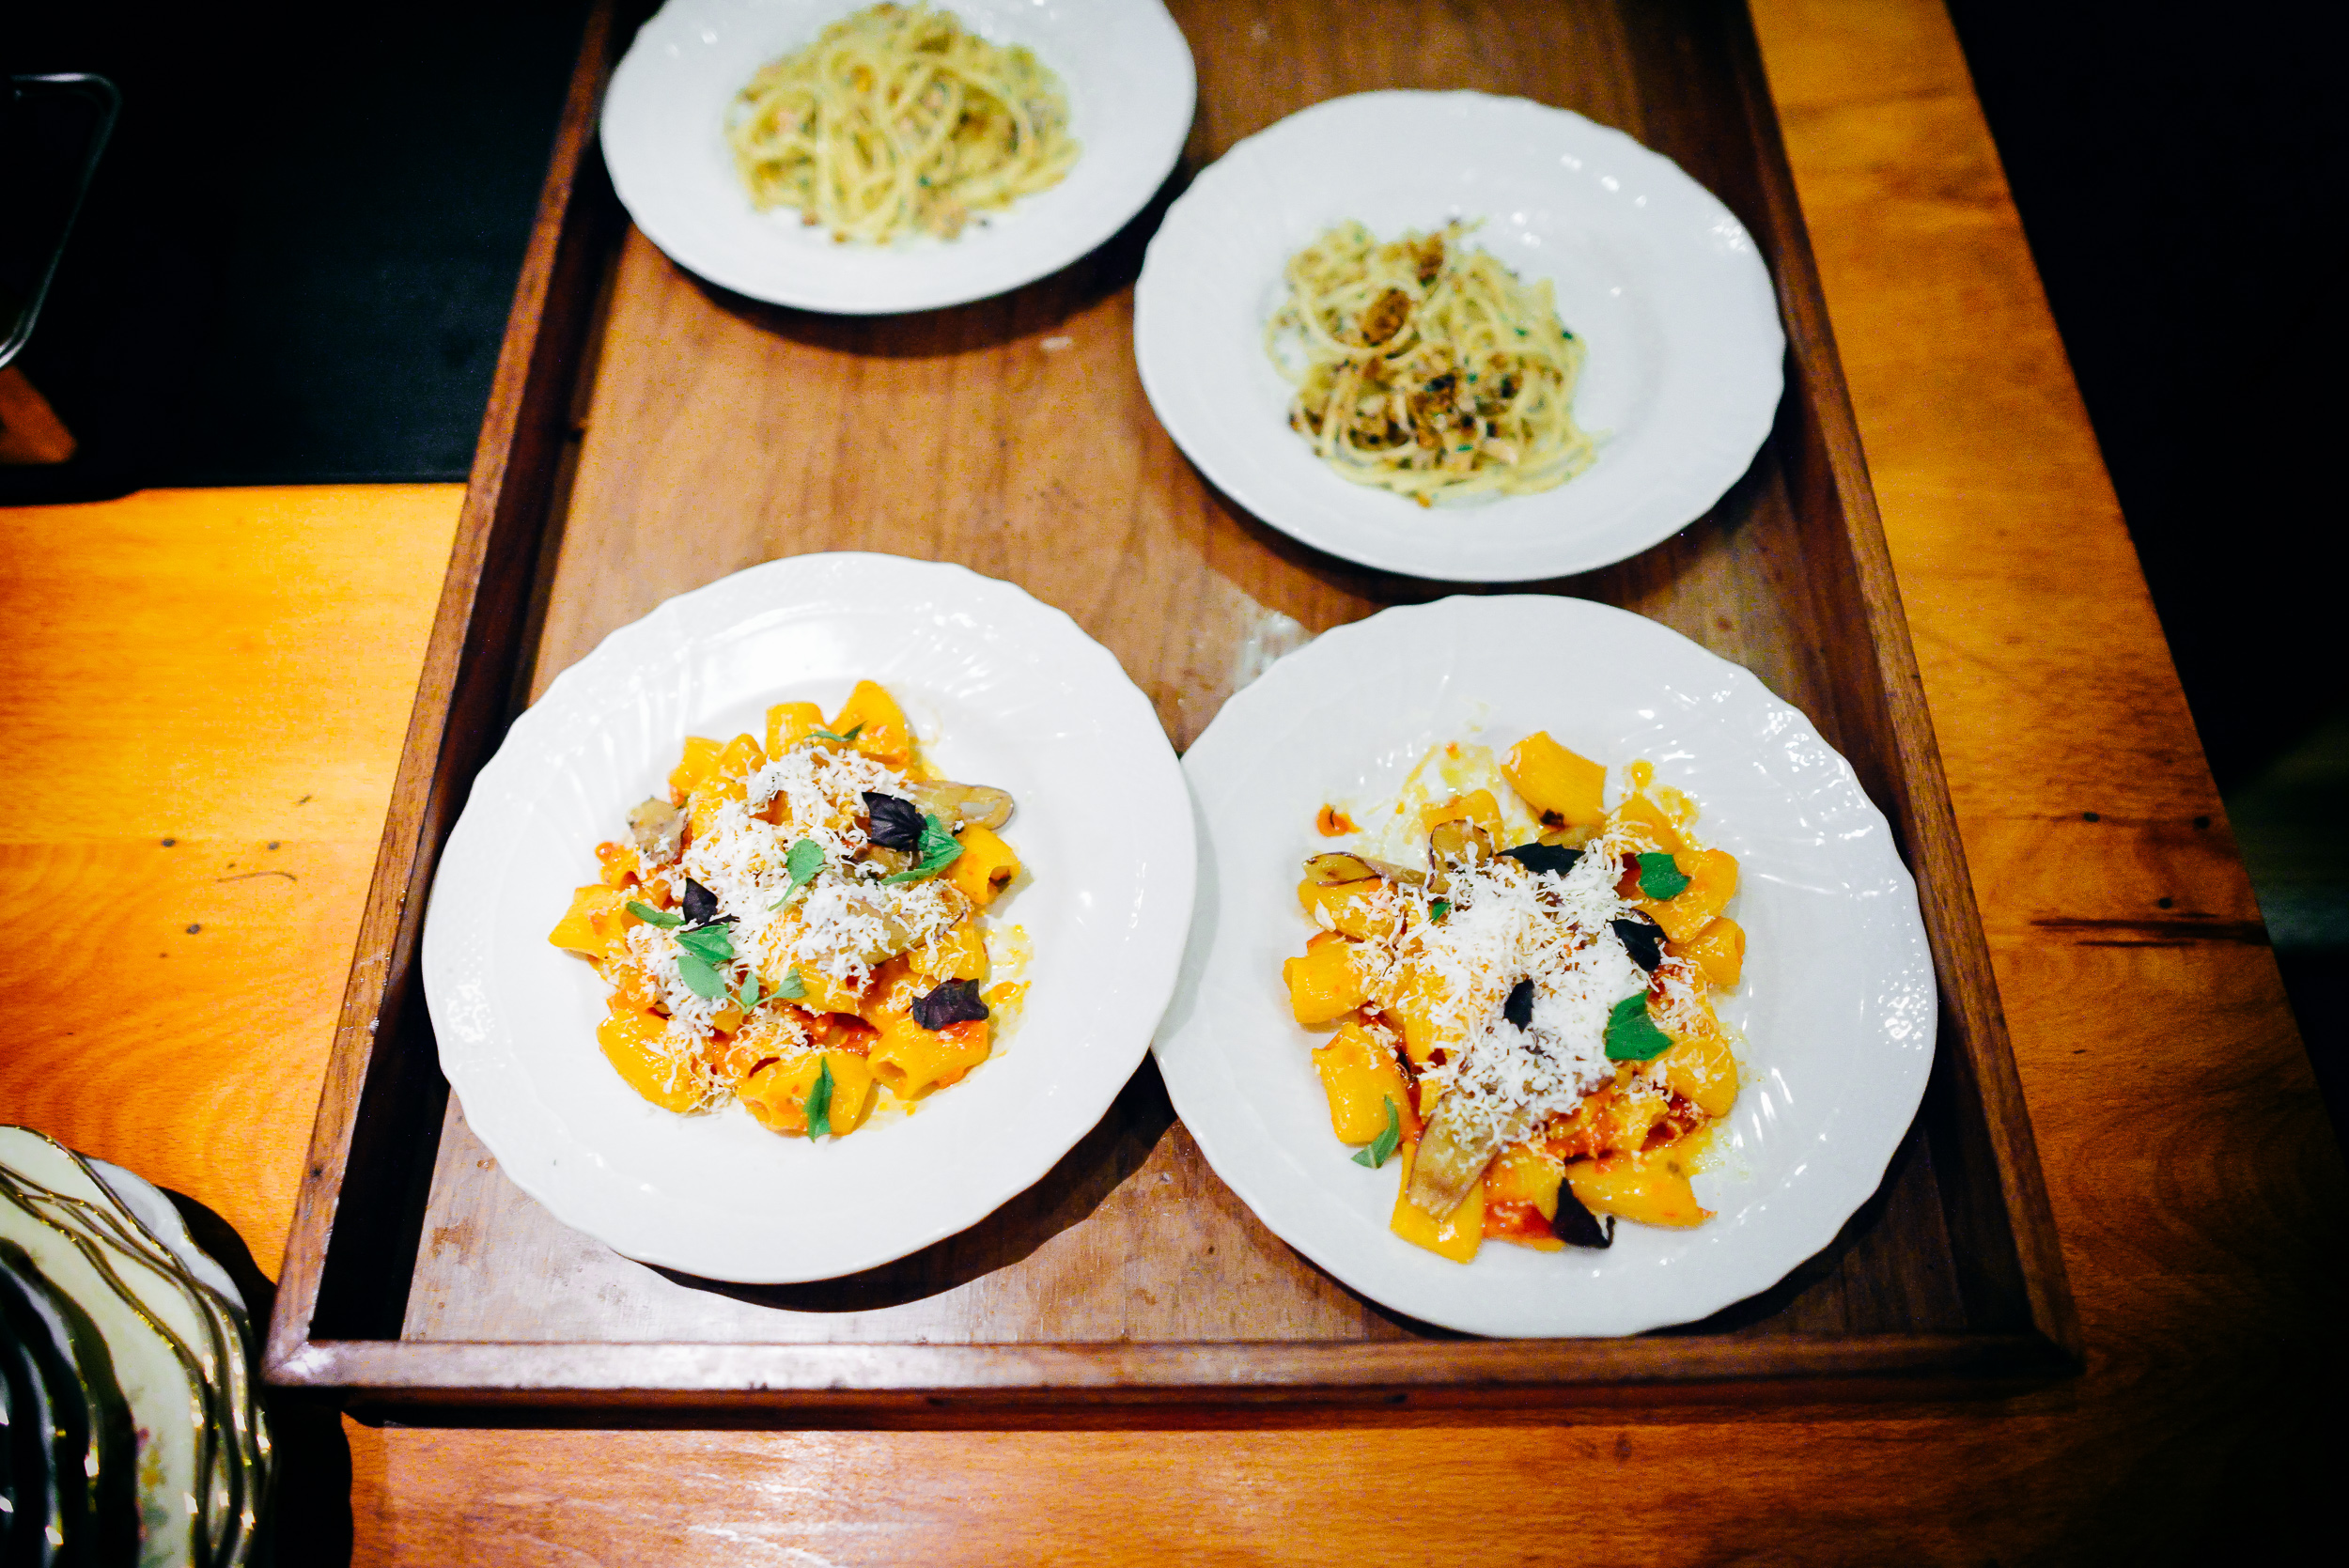 House-made pastas: Linguine with clams, burnt pizza dough crumb;